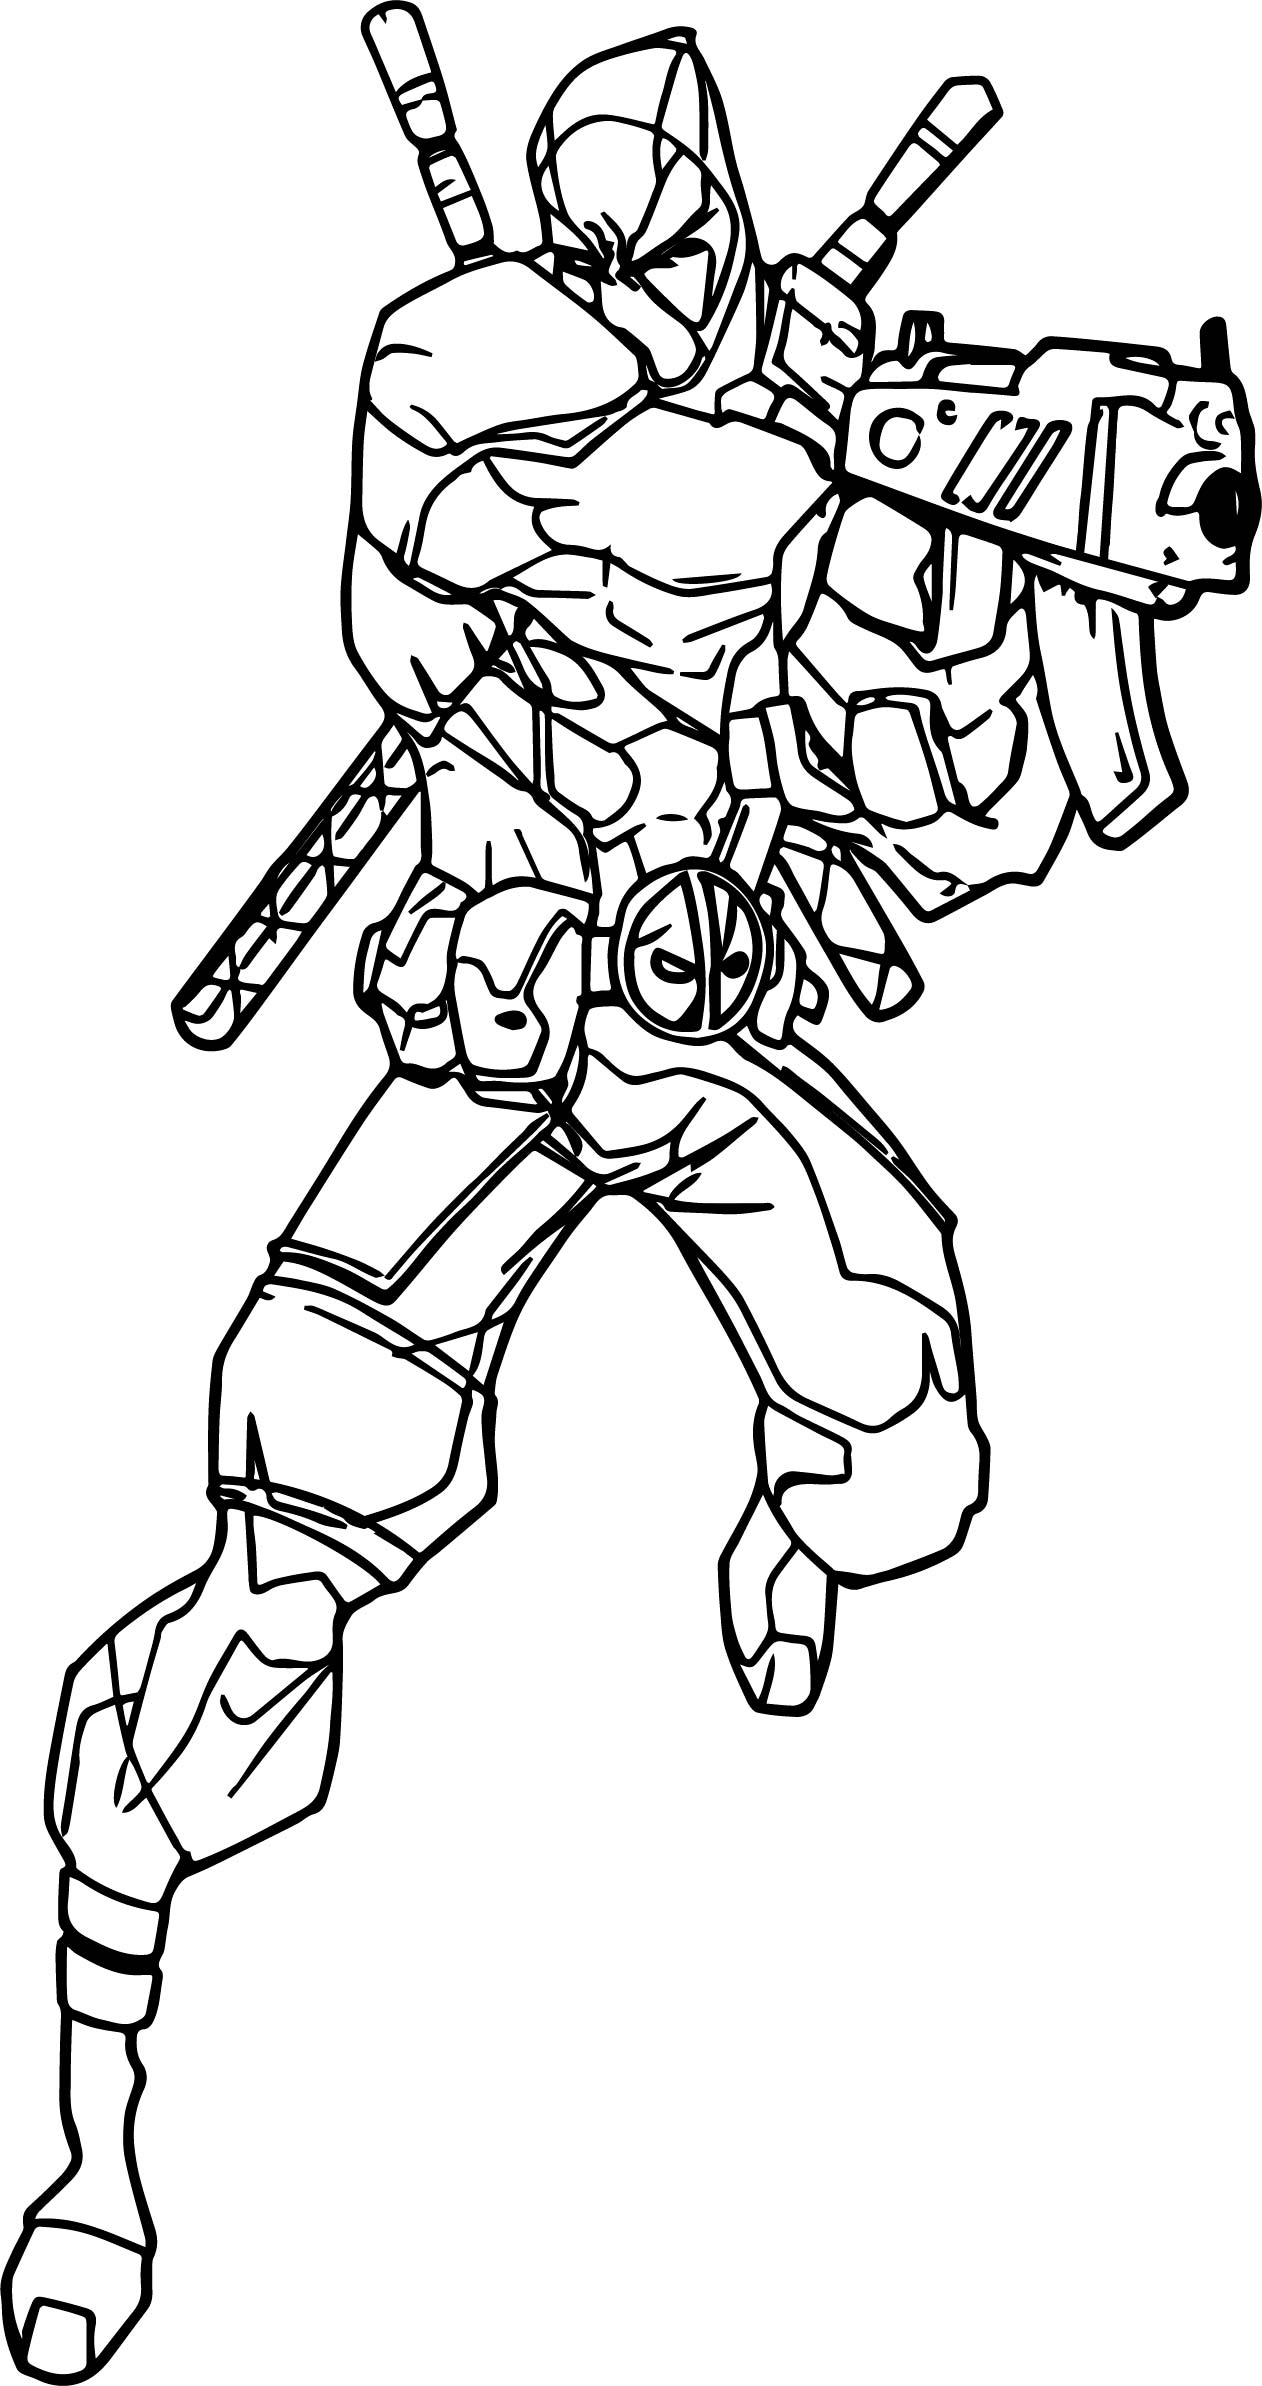 Deadpool Shoot Coloring Page